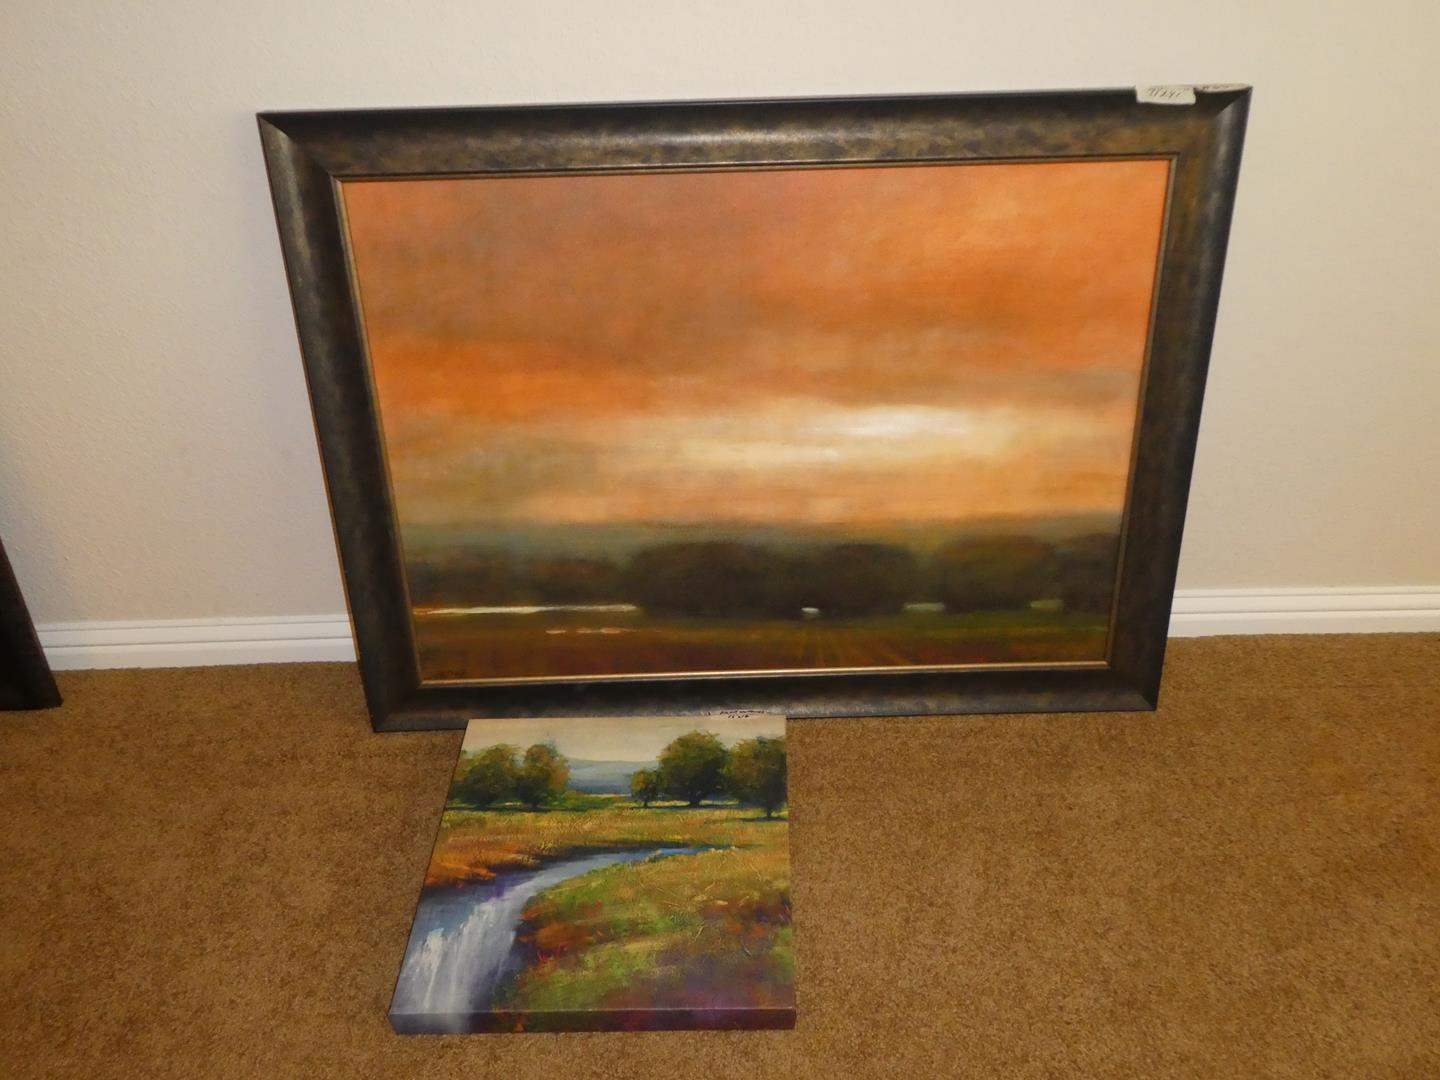 """Lot # 68 - Large Framed Signed Numbered Print """"Fields I"""" 19/150 by Lisa Joyce-Hill & Print on Canvas (main image)"""